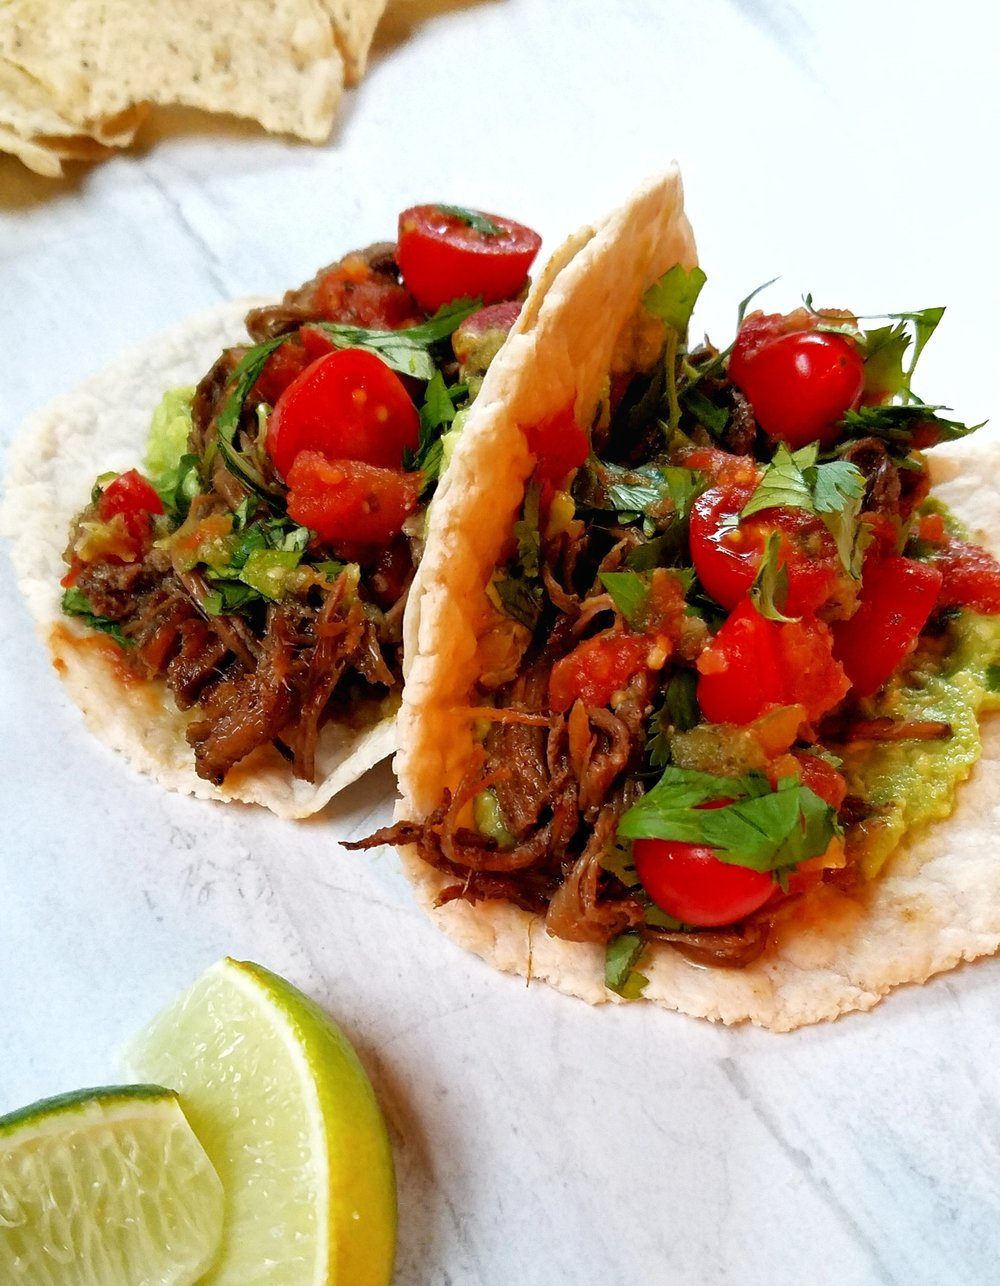 Grass-Fed Beef Slow Cooker Carnitas with Cassava Flour Tortillas